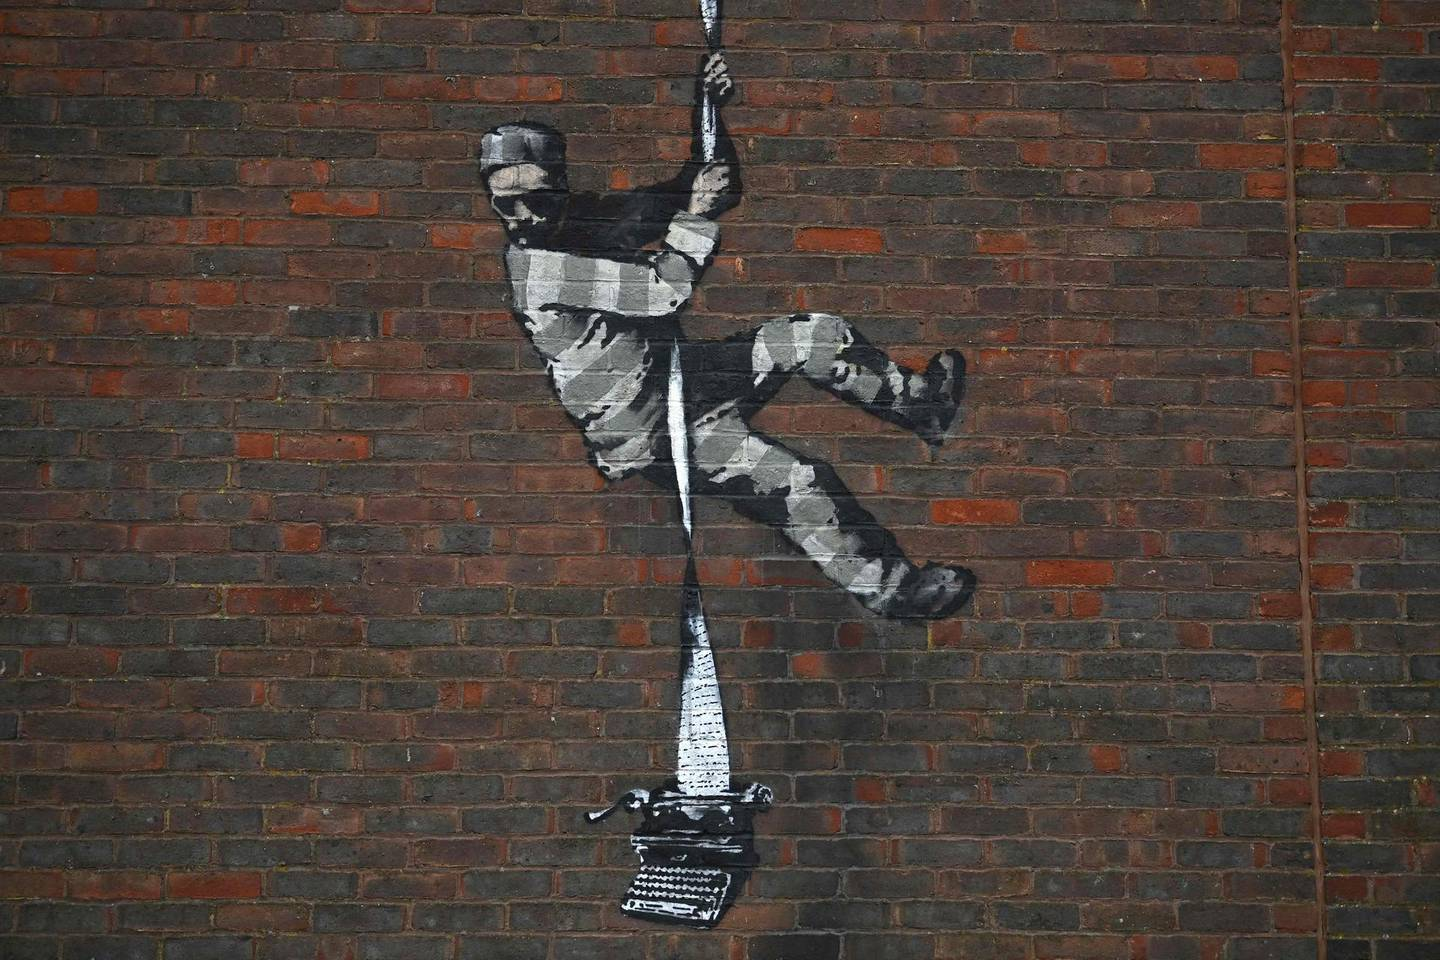 (FILES) This file photo taken on March 02, 2021 shows an artwork by street artist Banksy on the side of Reading Prison in Reading, west of London.  Street artist Banksy on March 4 claimed responsibility for a painting on the wall of a former British prison that once held playwright Oscar Wilde. The artwork shows a prisoner escaping on a rope made of bedsheets tied to a typewriter.  - RESTRICTED TO EDITORIAL USE - MANDATORY MENTION OF THE ARTIST UPON PUBLICATION - TO ILLUSTRATE THE EVENT AS SPECIFIED IN THE CAPTION  / AFP / BEN STANSALL / RESTRICTED TO EDITORIAL USE - MANDATORY MENTION OF THE ARTIST UPON PUBLICATION - TO ILLUSTRATE THE EVENT AS SPECIFIED IN THE CAPTION